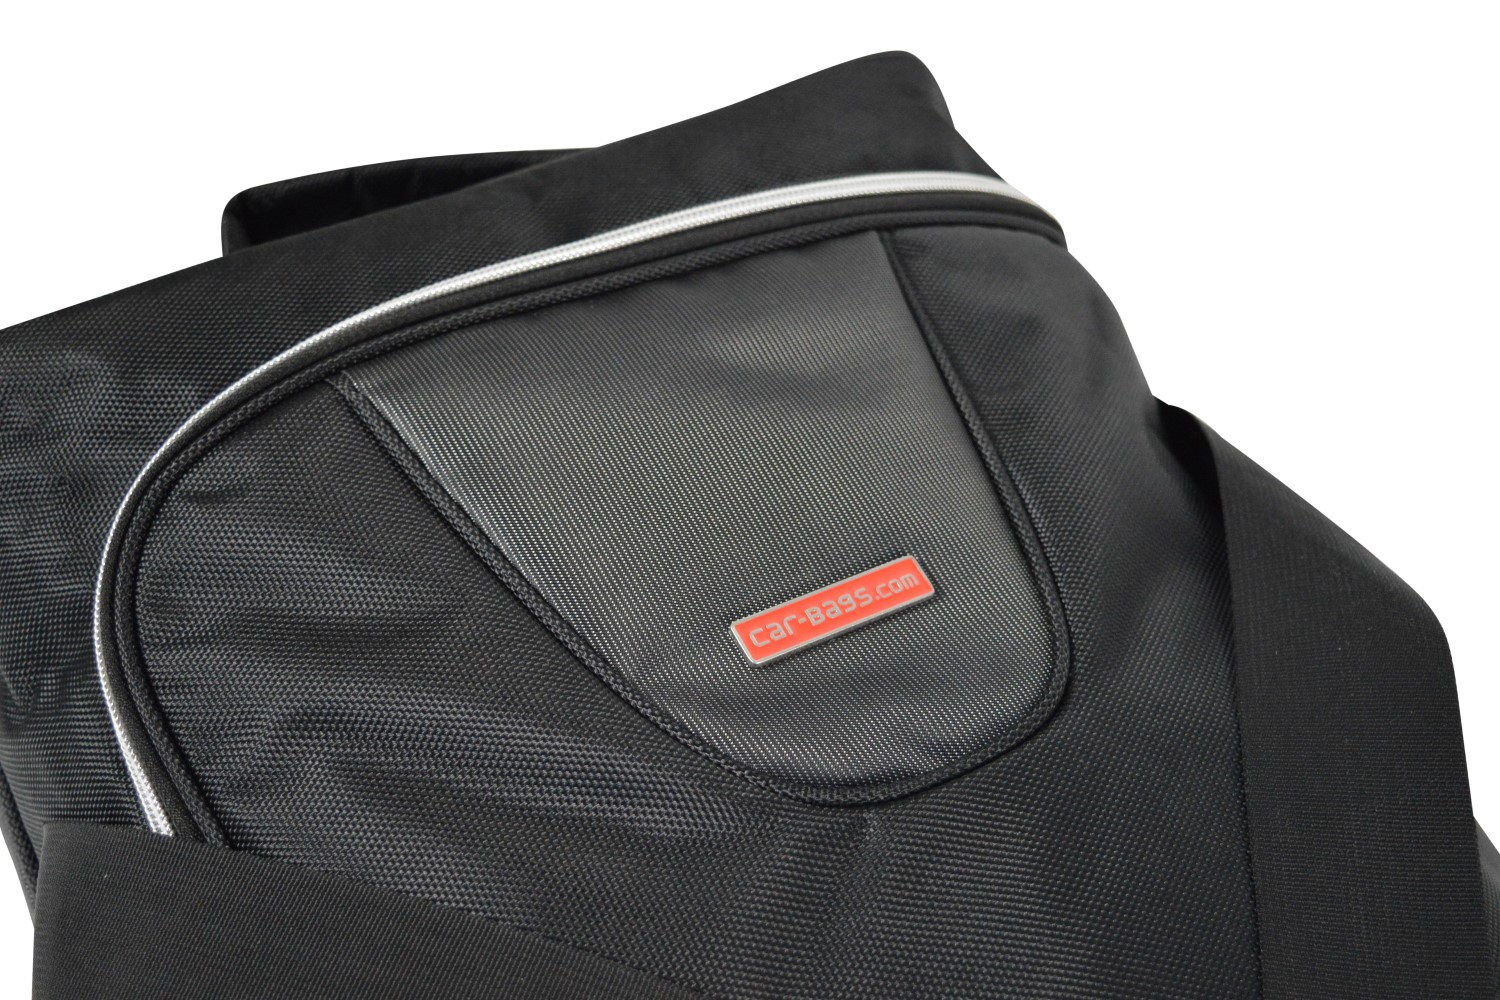 Top quality and 3 years warranty on Car-Bags.com travel bags